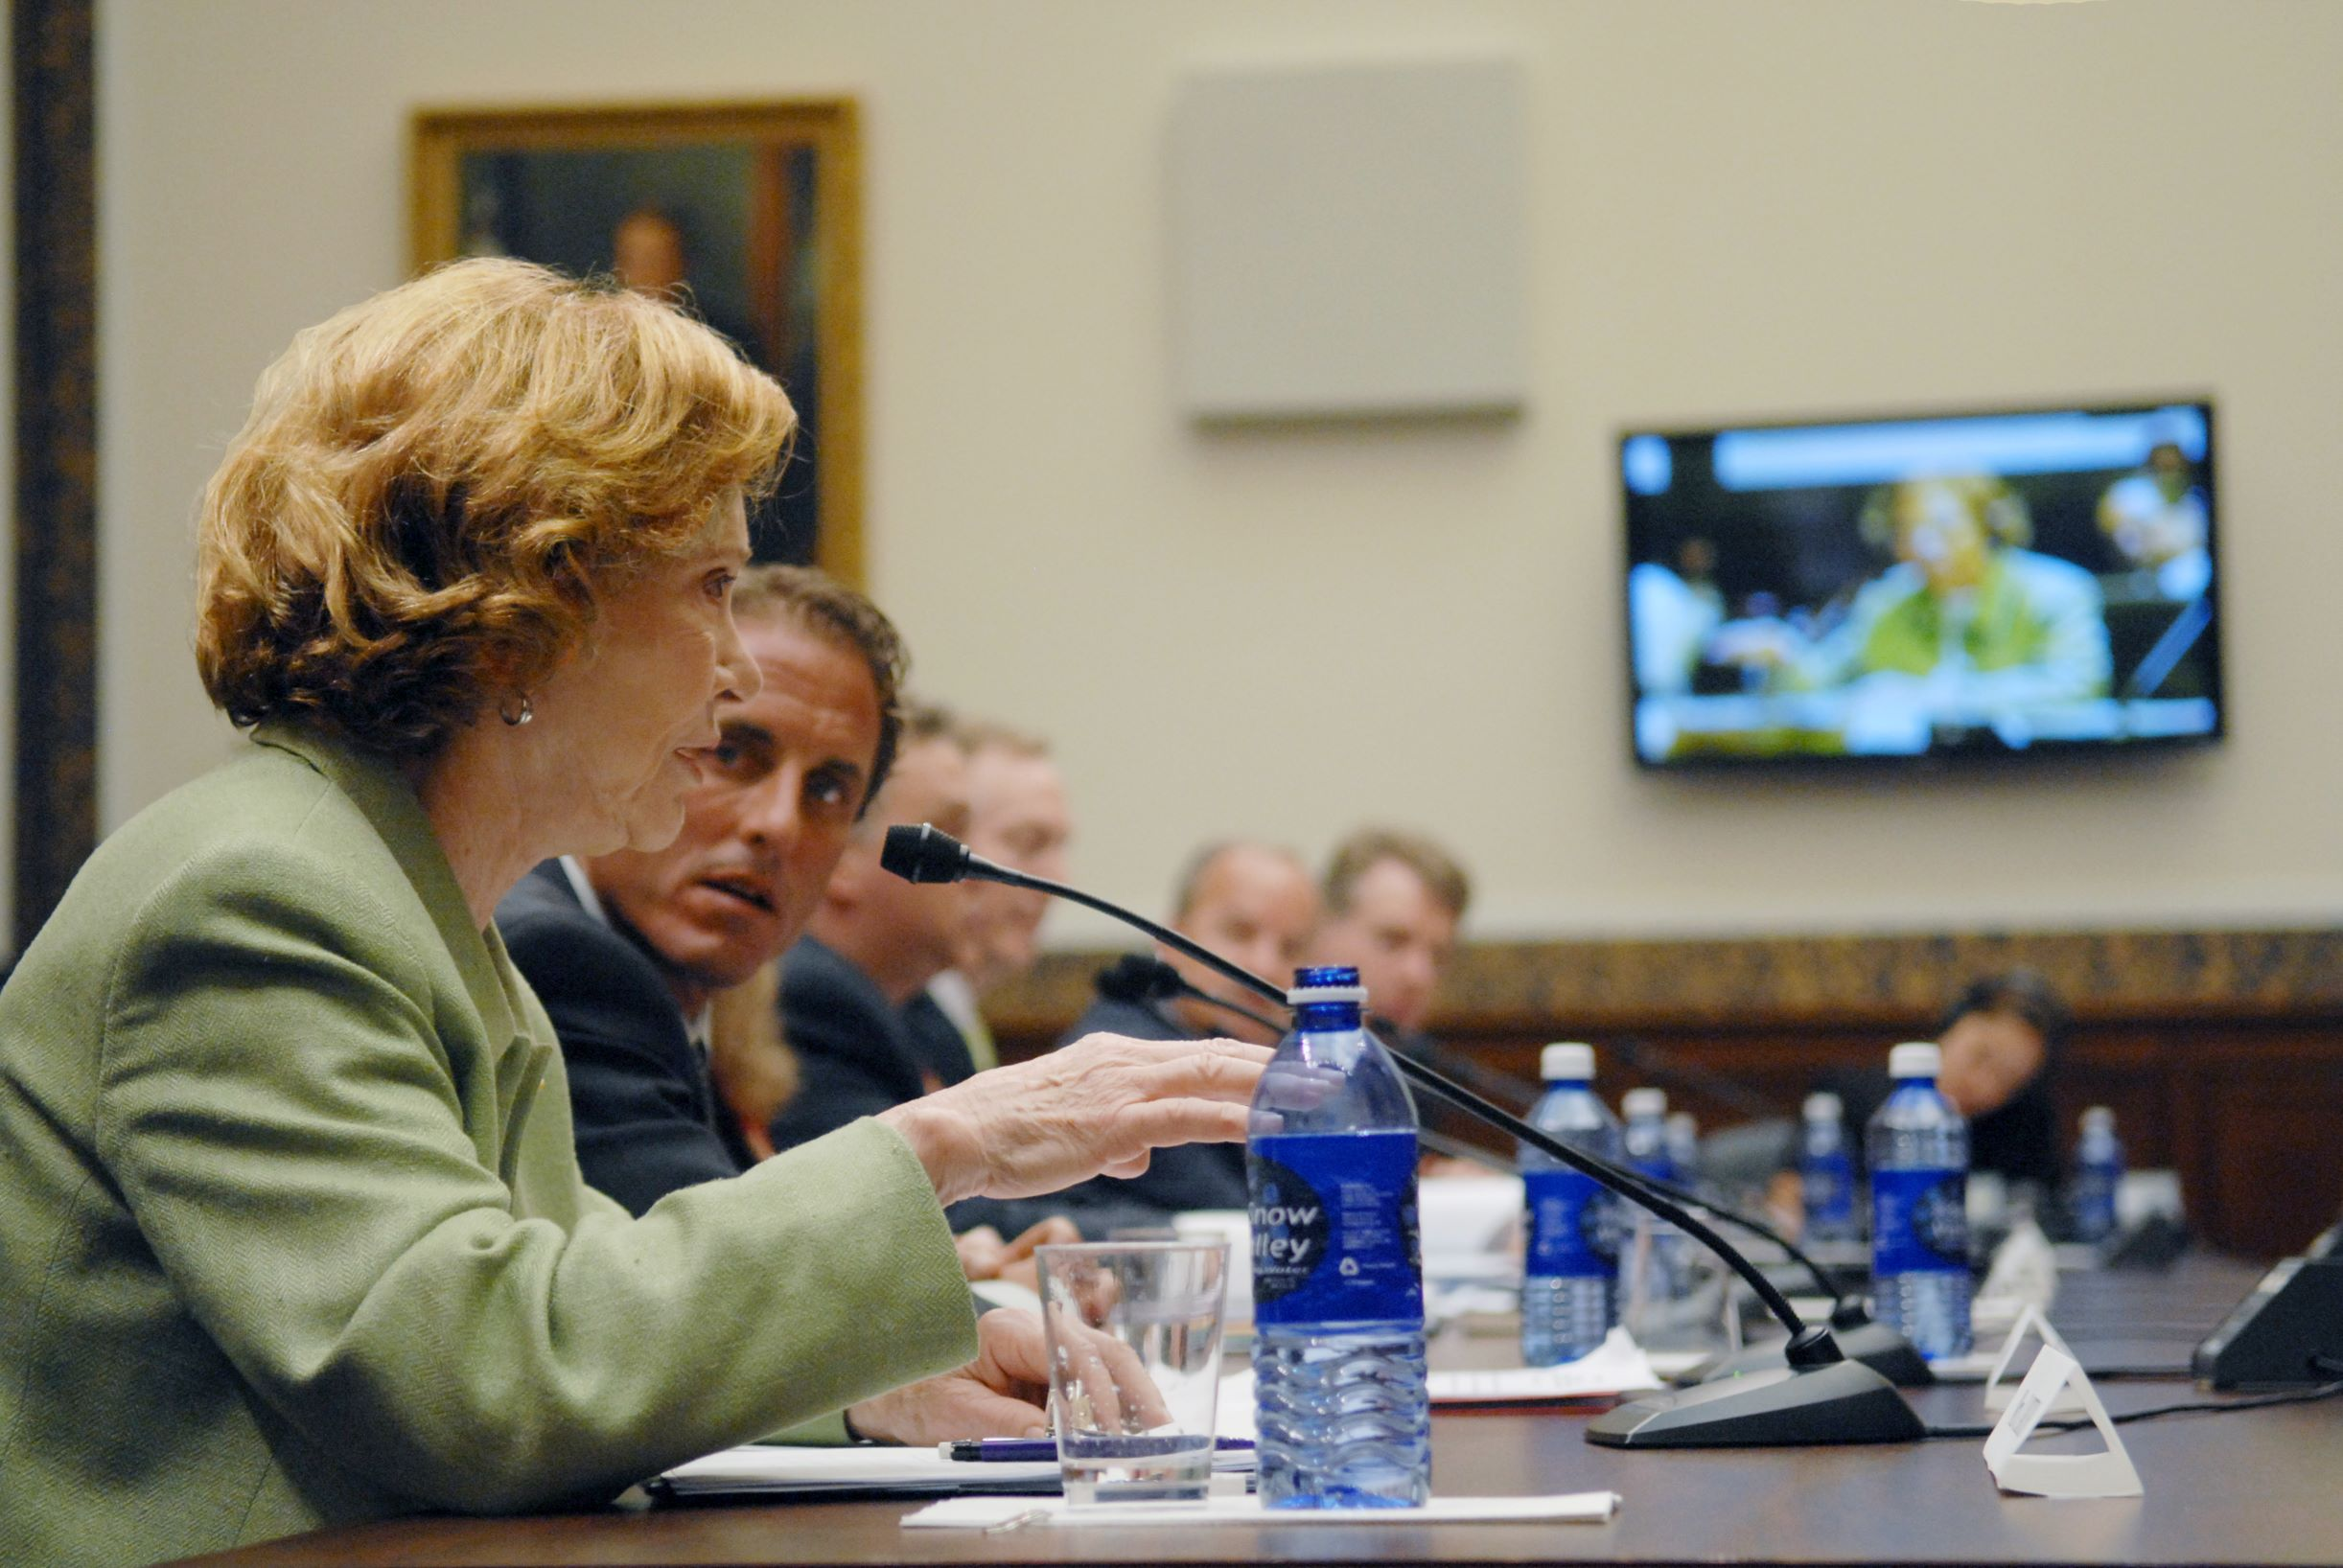 On July 10, 2007, Rosalynn Carter testified before a U.S. House of Representatives subcommittee in favor of the Wellstone Domenici Mental Health Parity and Addiction Equity Act, calling for mental illnesses to be covered by insurance on par with physical illnesses. (Photo/The Carter Center)